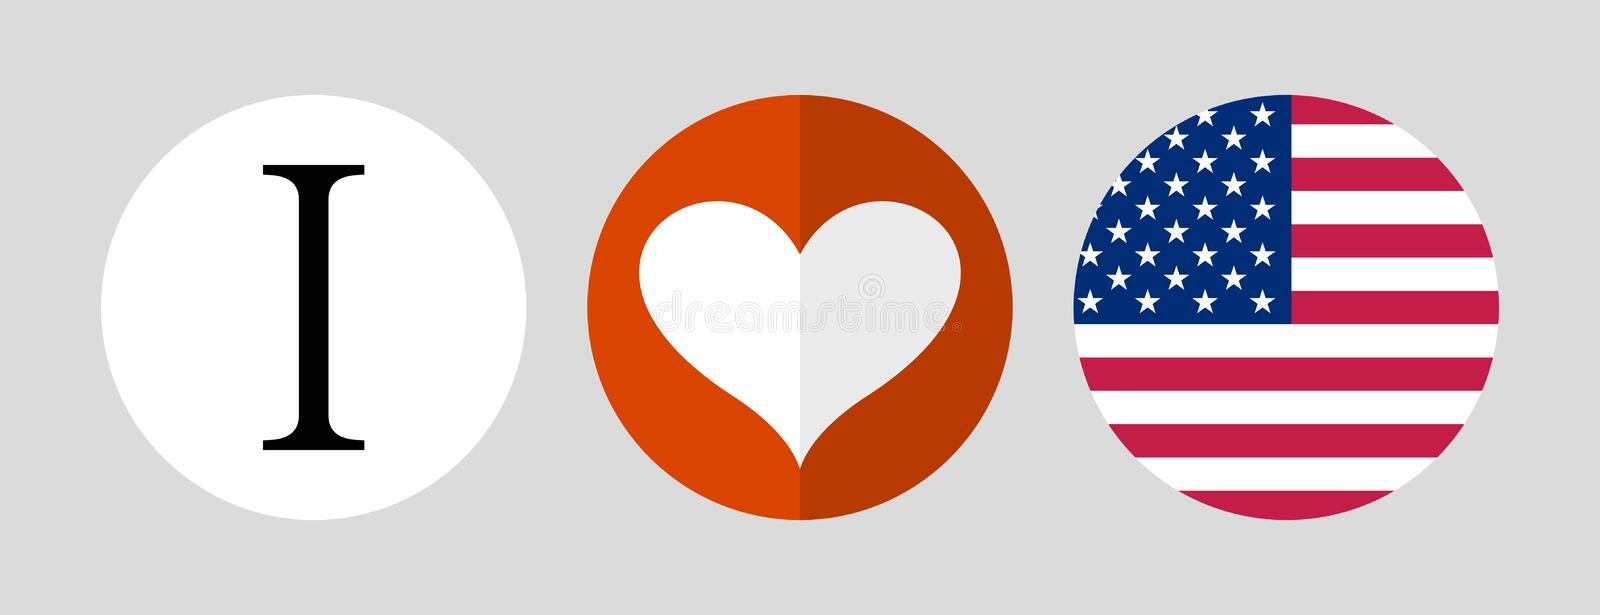 I love America. Flag and heart icon royalty free illustration